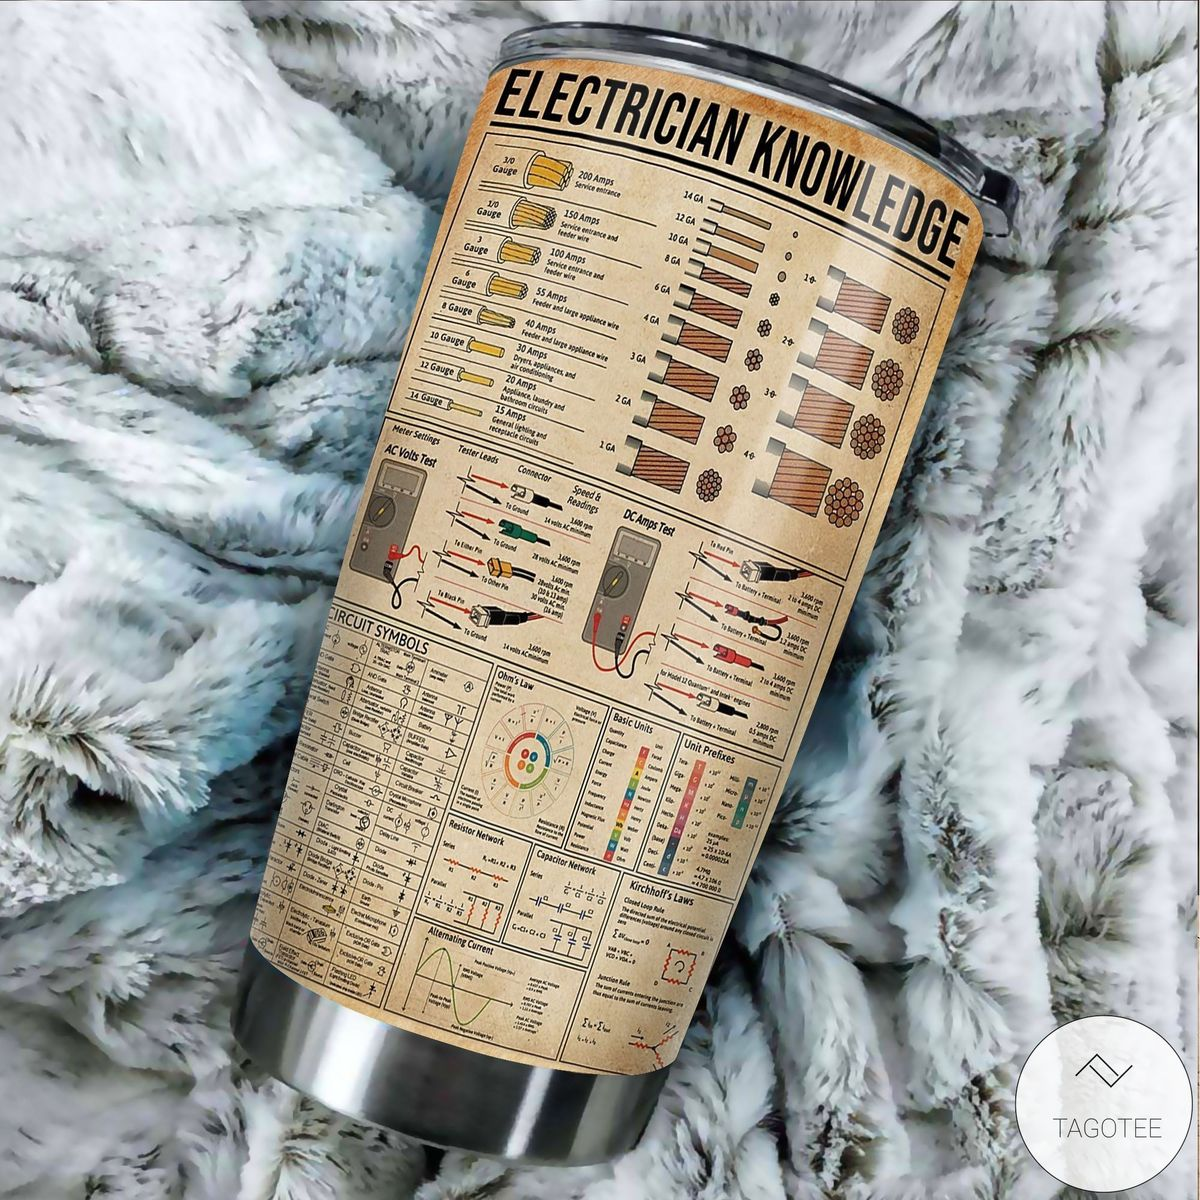 Electrician Knowledge Tumbler